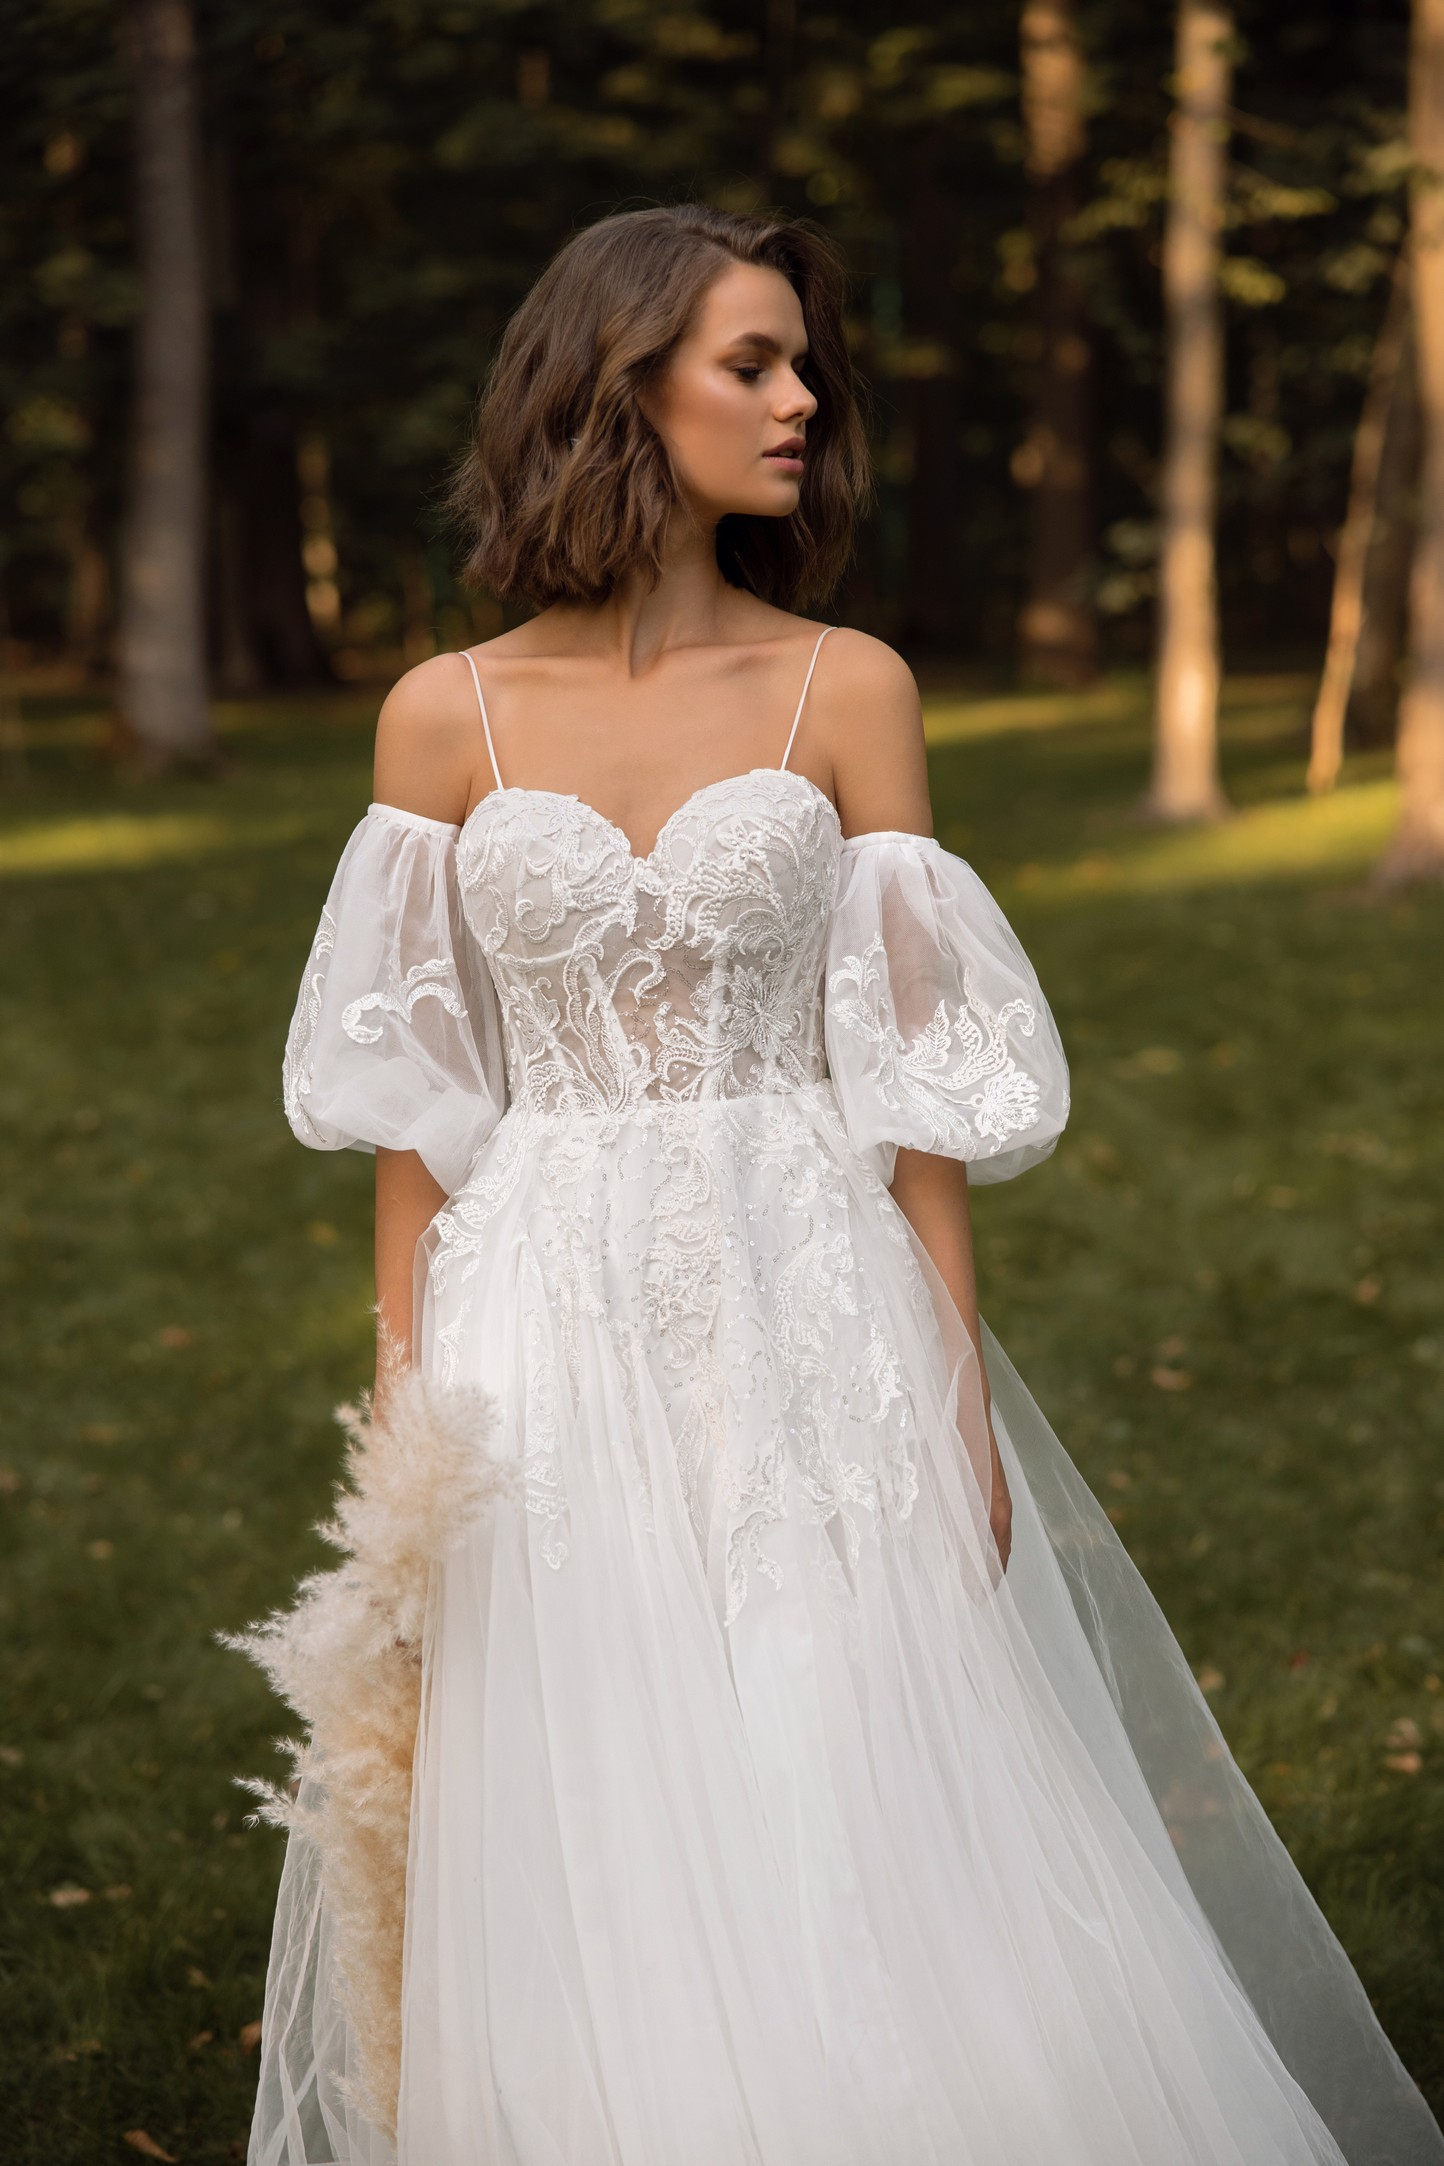 Lace Halter Neckline Fit And Flare Lace Wedding Dress With Back Detail